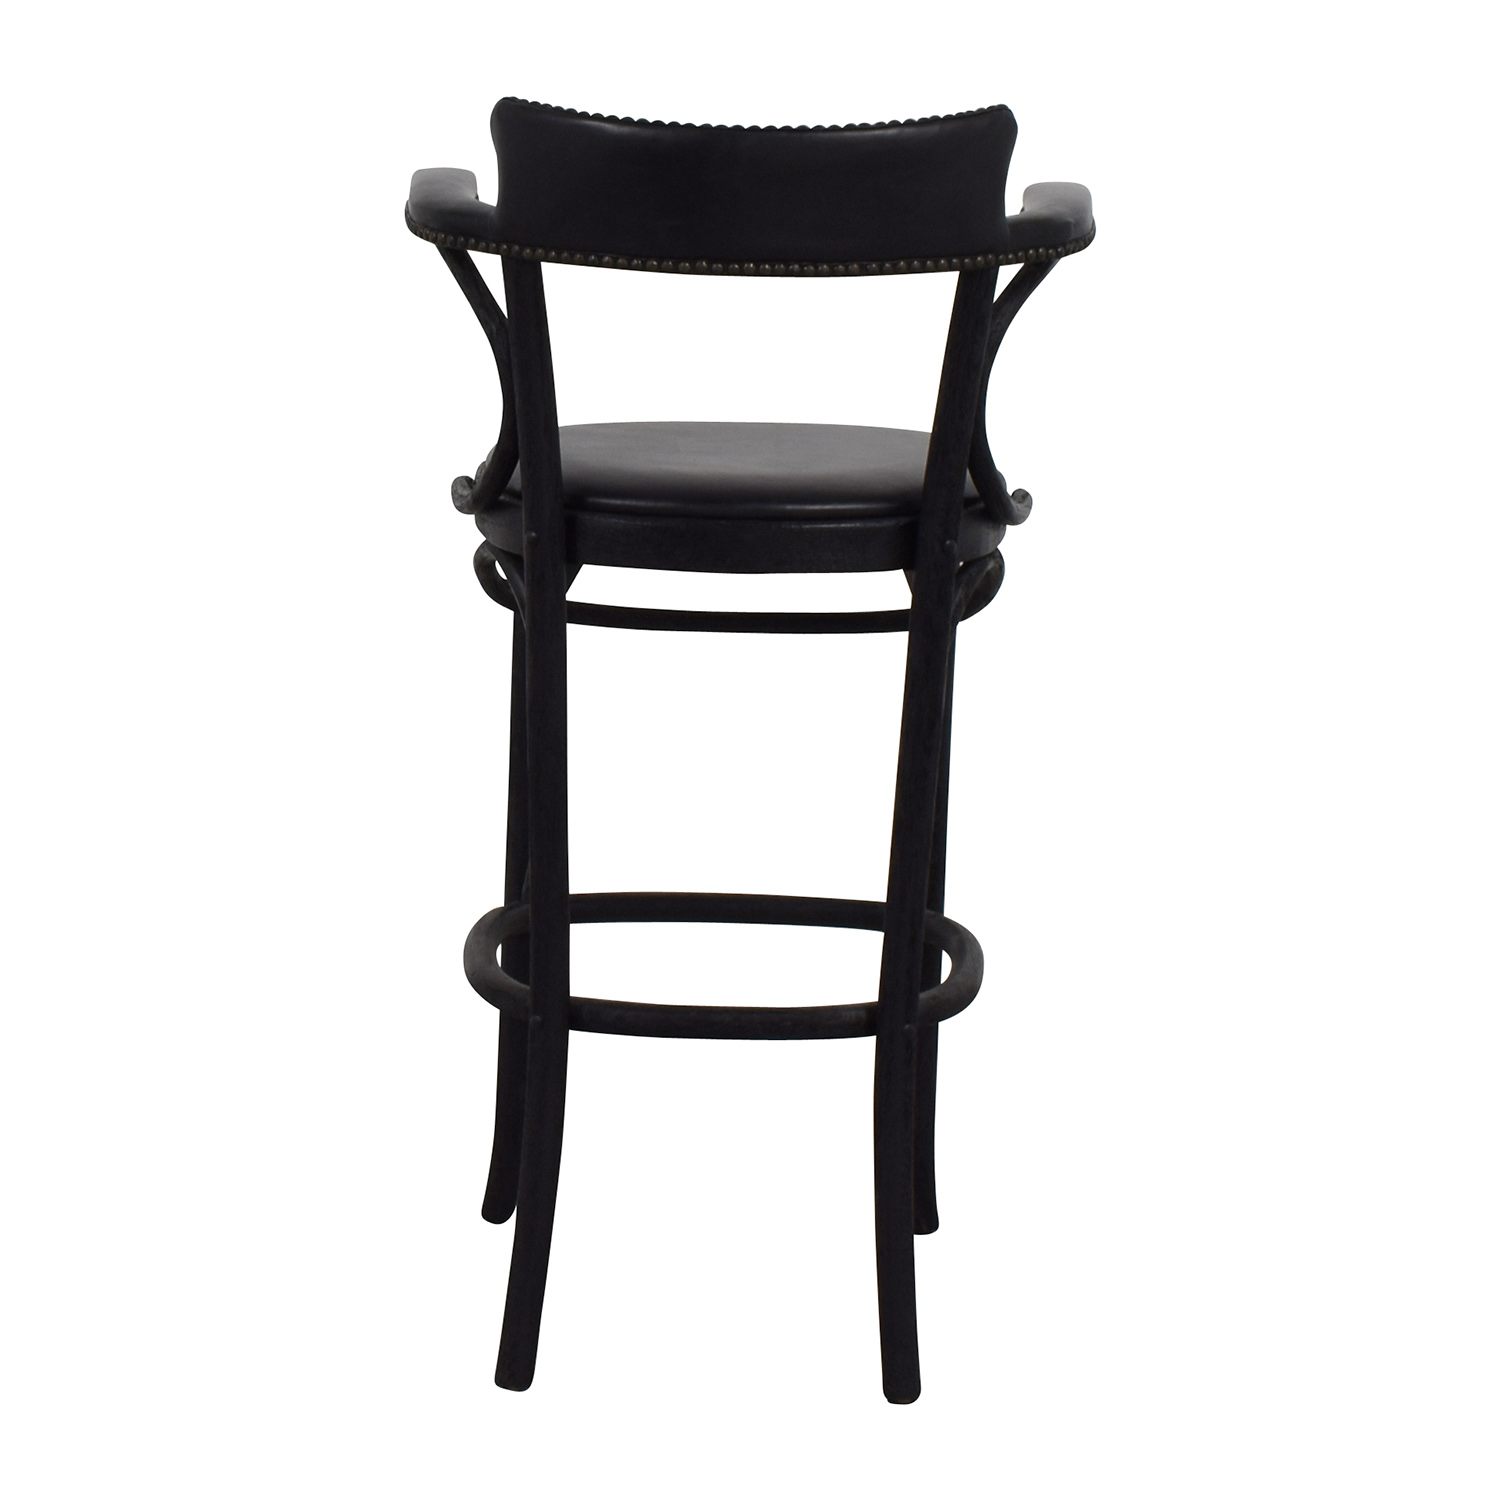 Restoration Hardware Restoration Hardware Vienna Cafe Leather Stool dimensions